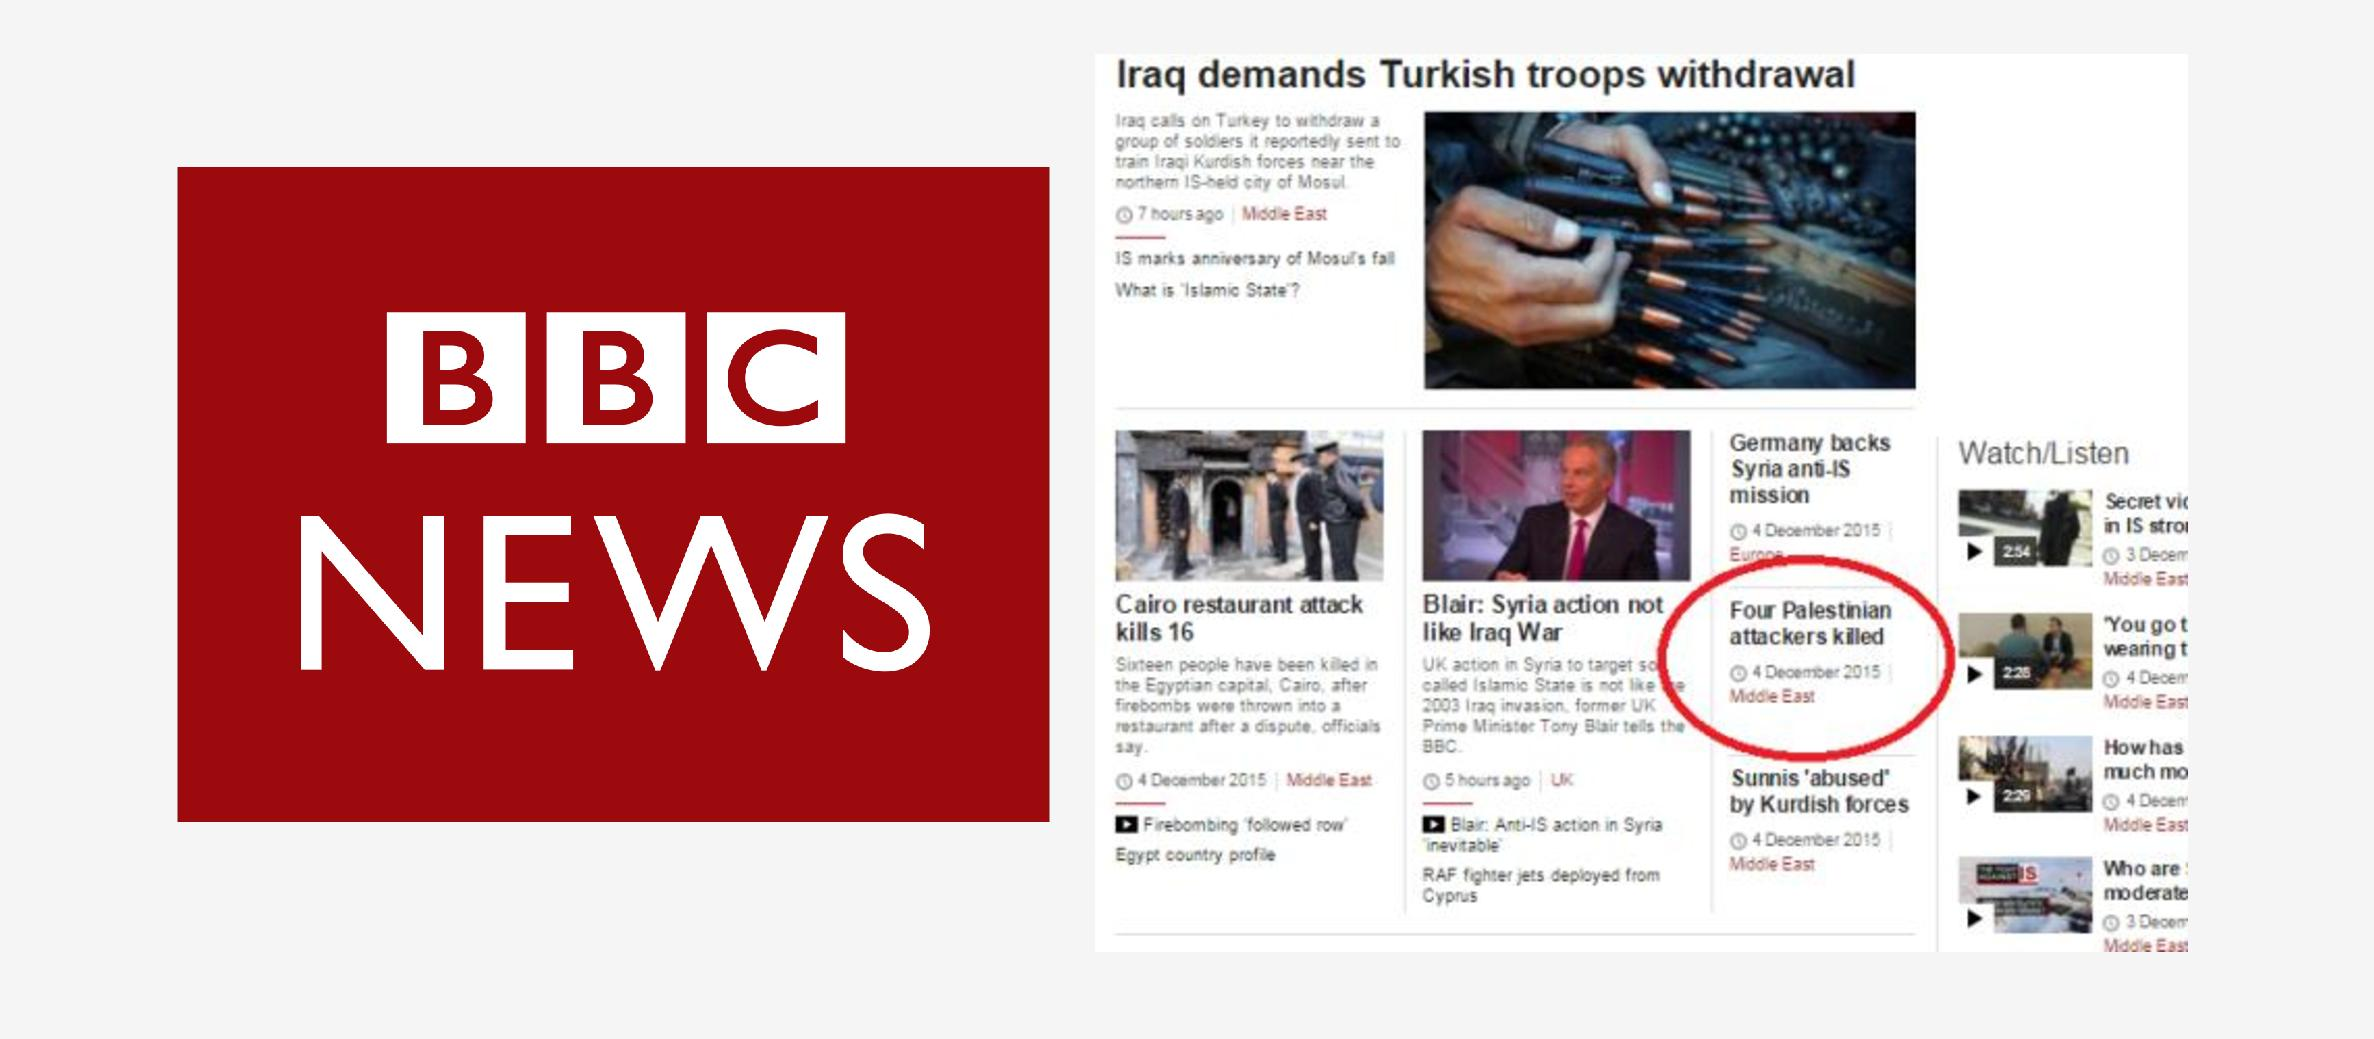 BBC News ignored most terror attacks in Israel for first half of December, say watchdog